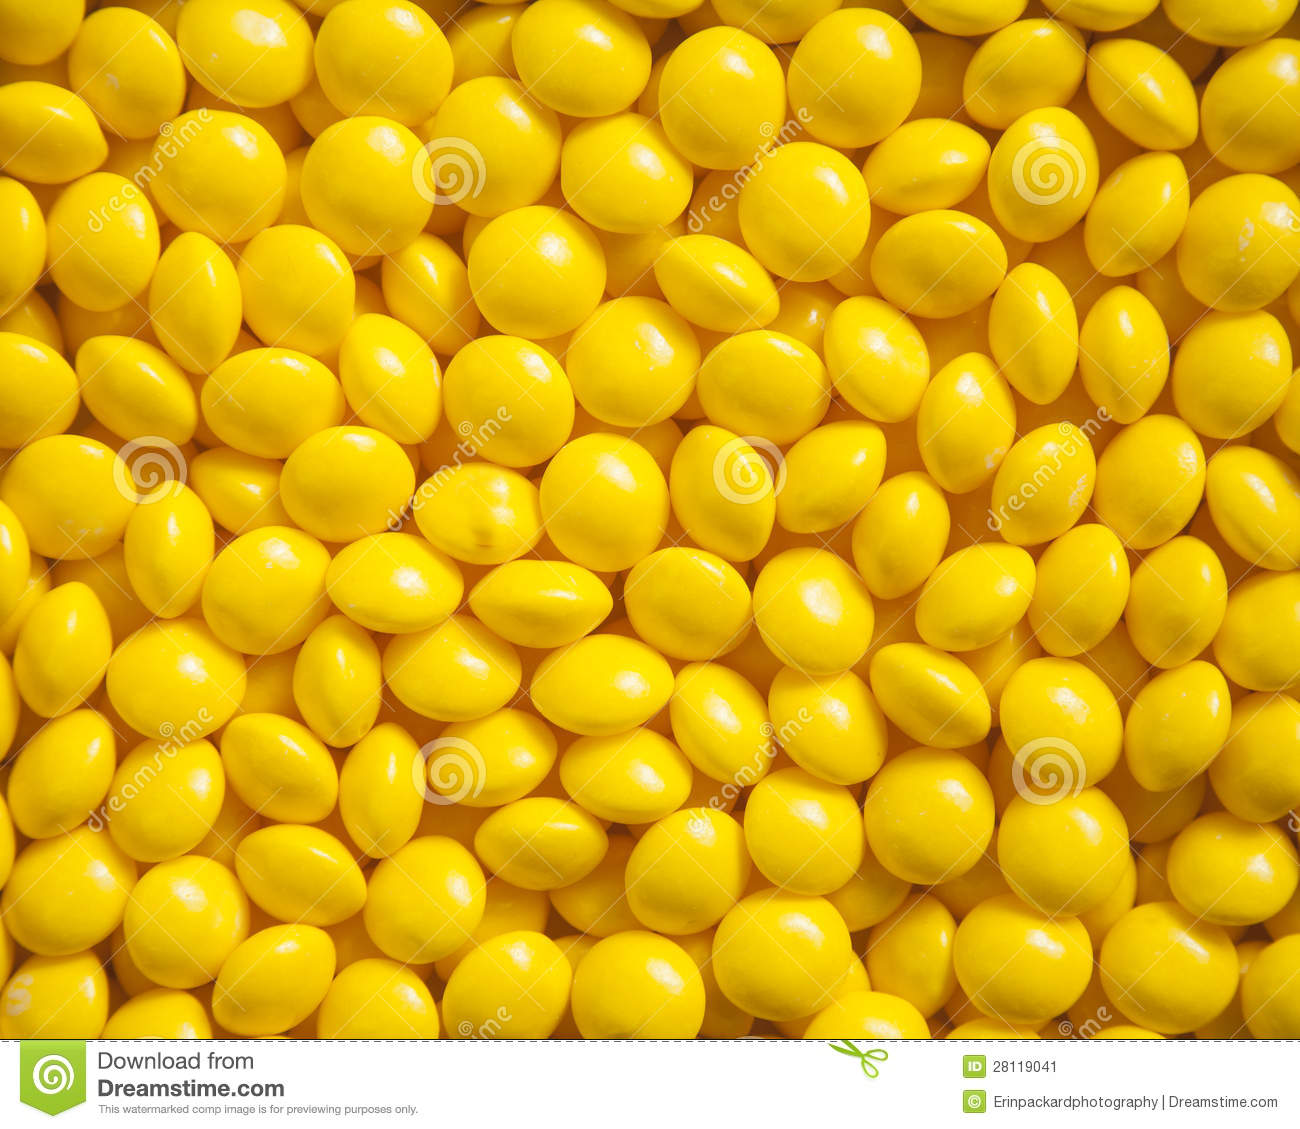 Bright yellow candies for a textured background.